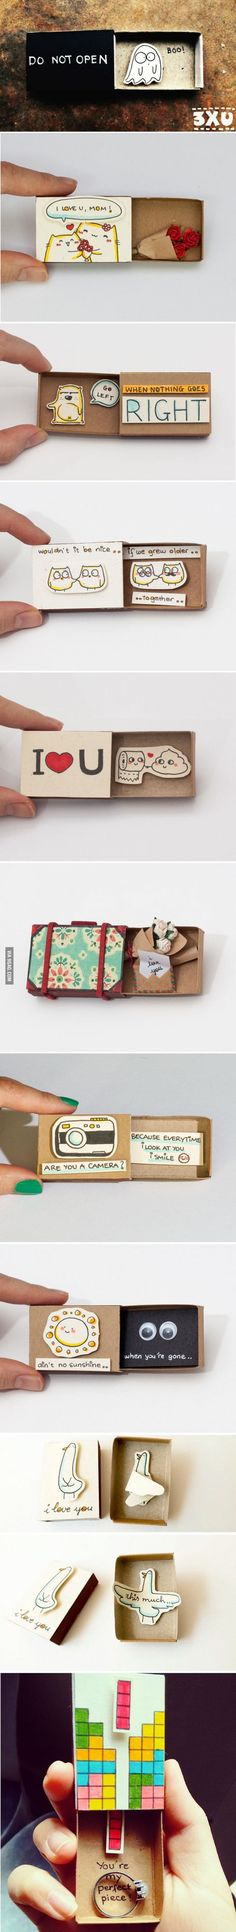 greeting cards with hidden messages inside (part I) - 9GAG